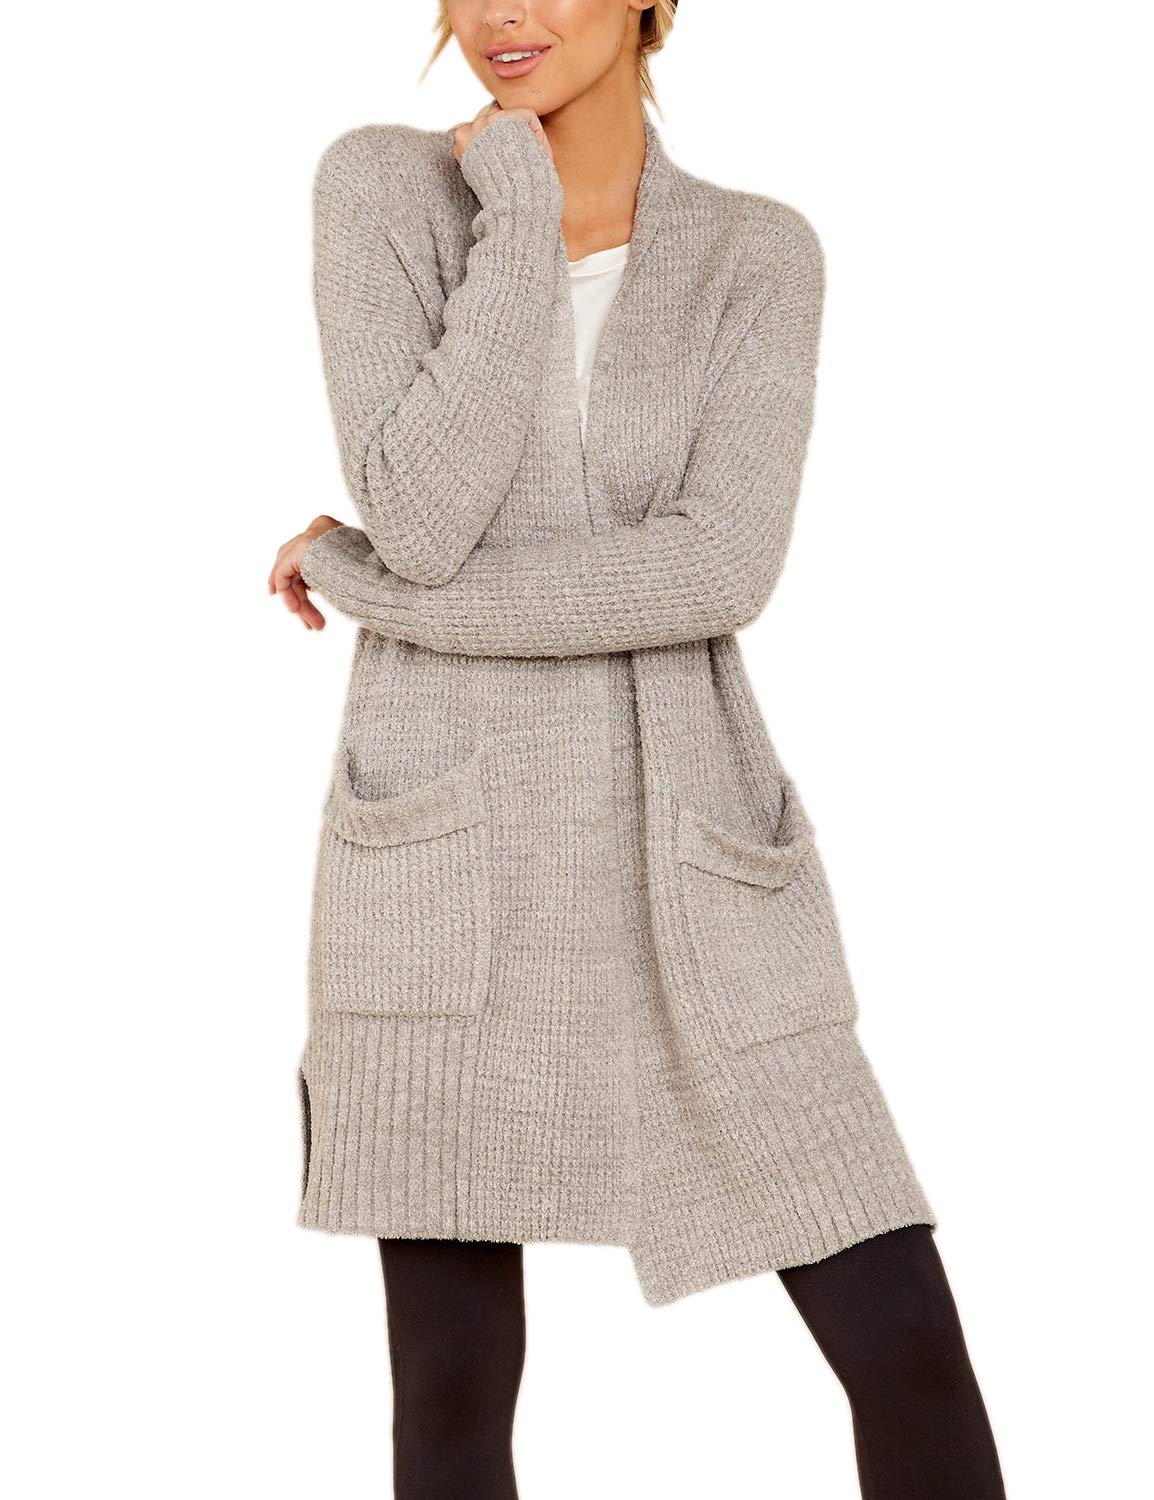 BMJL Women's Long Sleeve Fuzzy Coat Warm Sweater Pocket Split Cardigans Grey